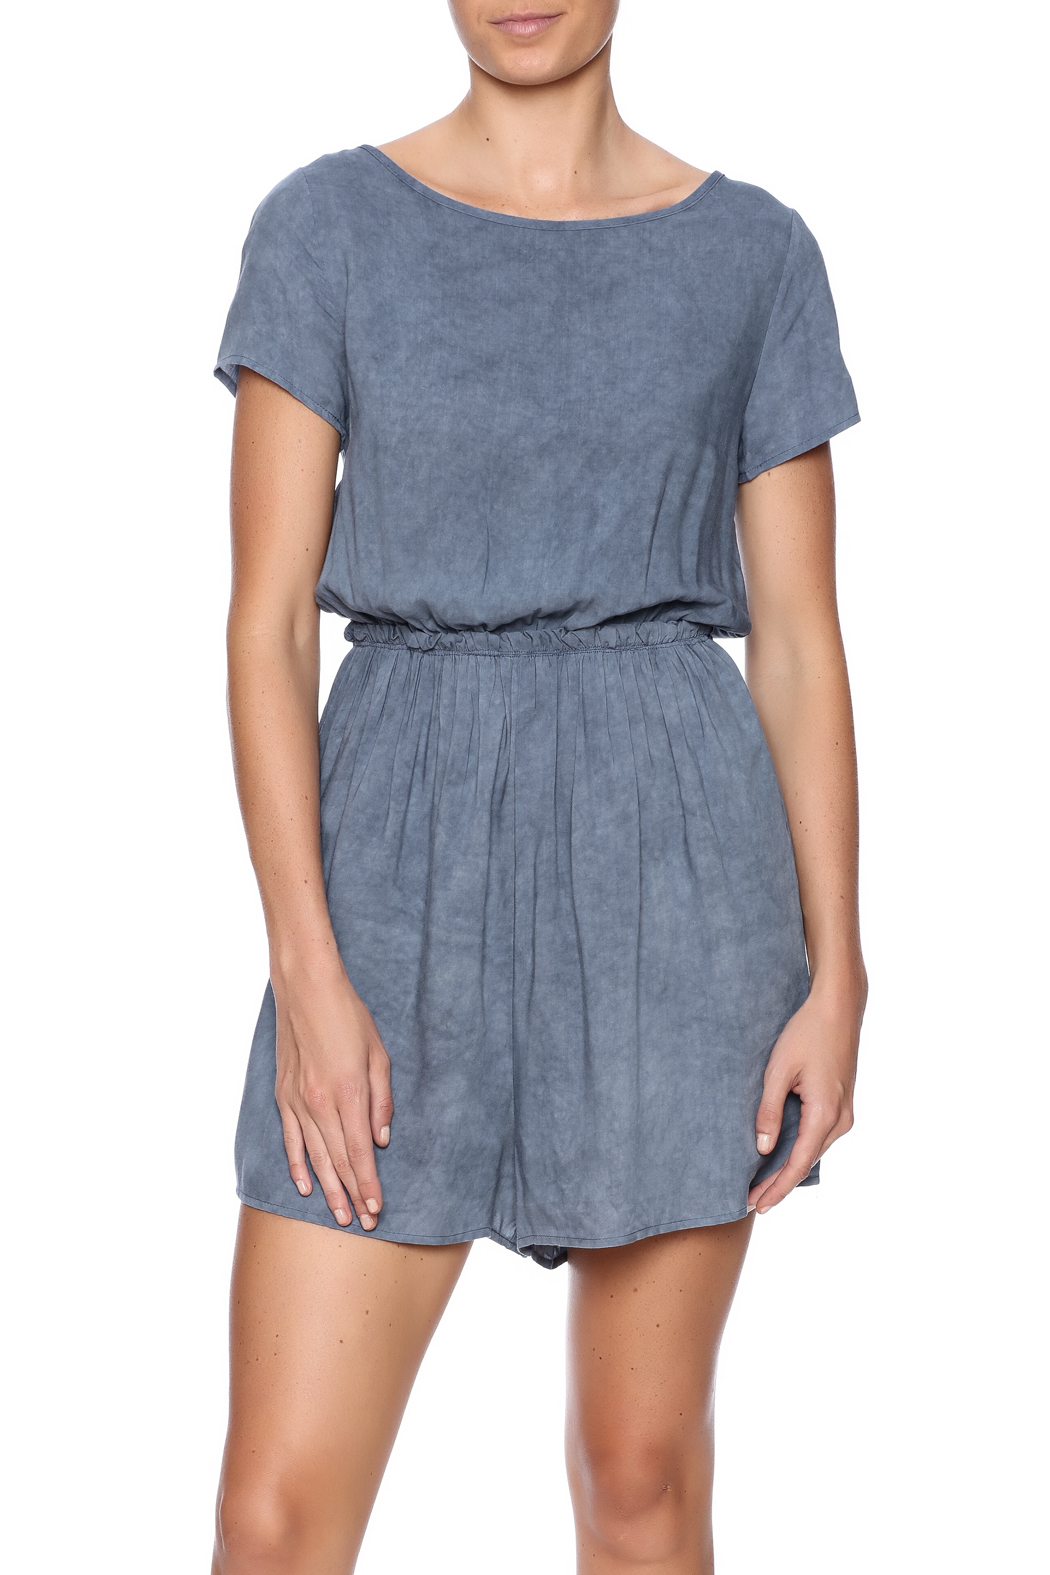 Jella Couture Washed Denim Romper - Main Image